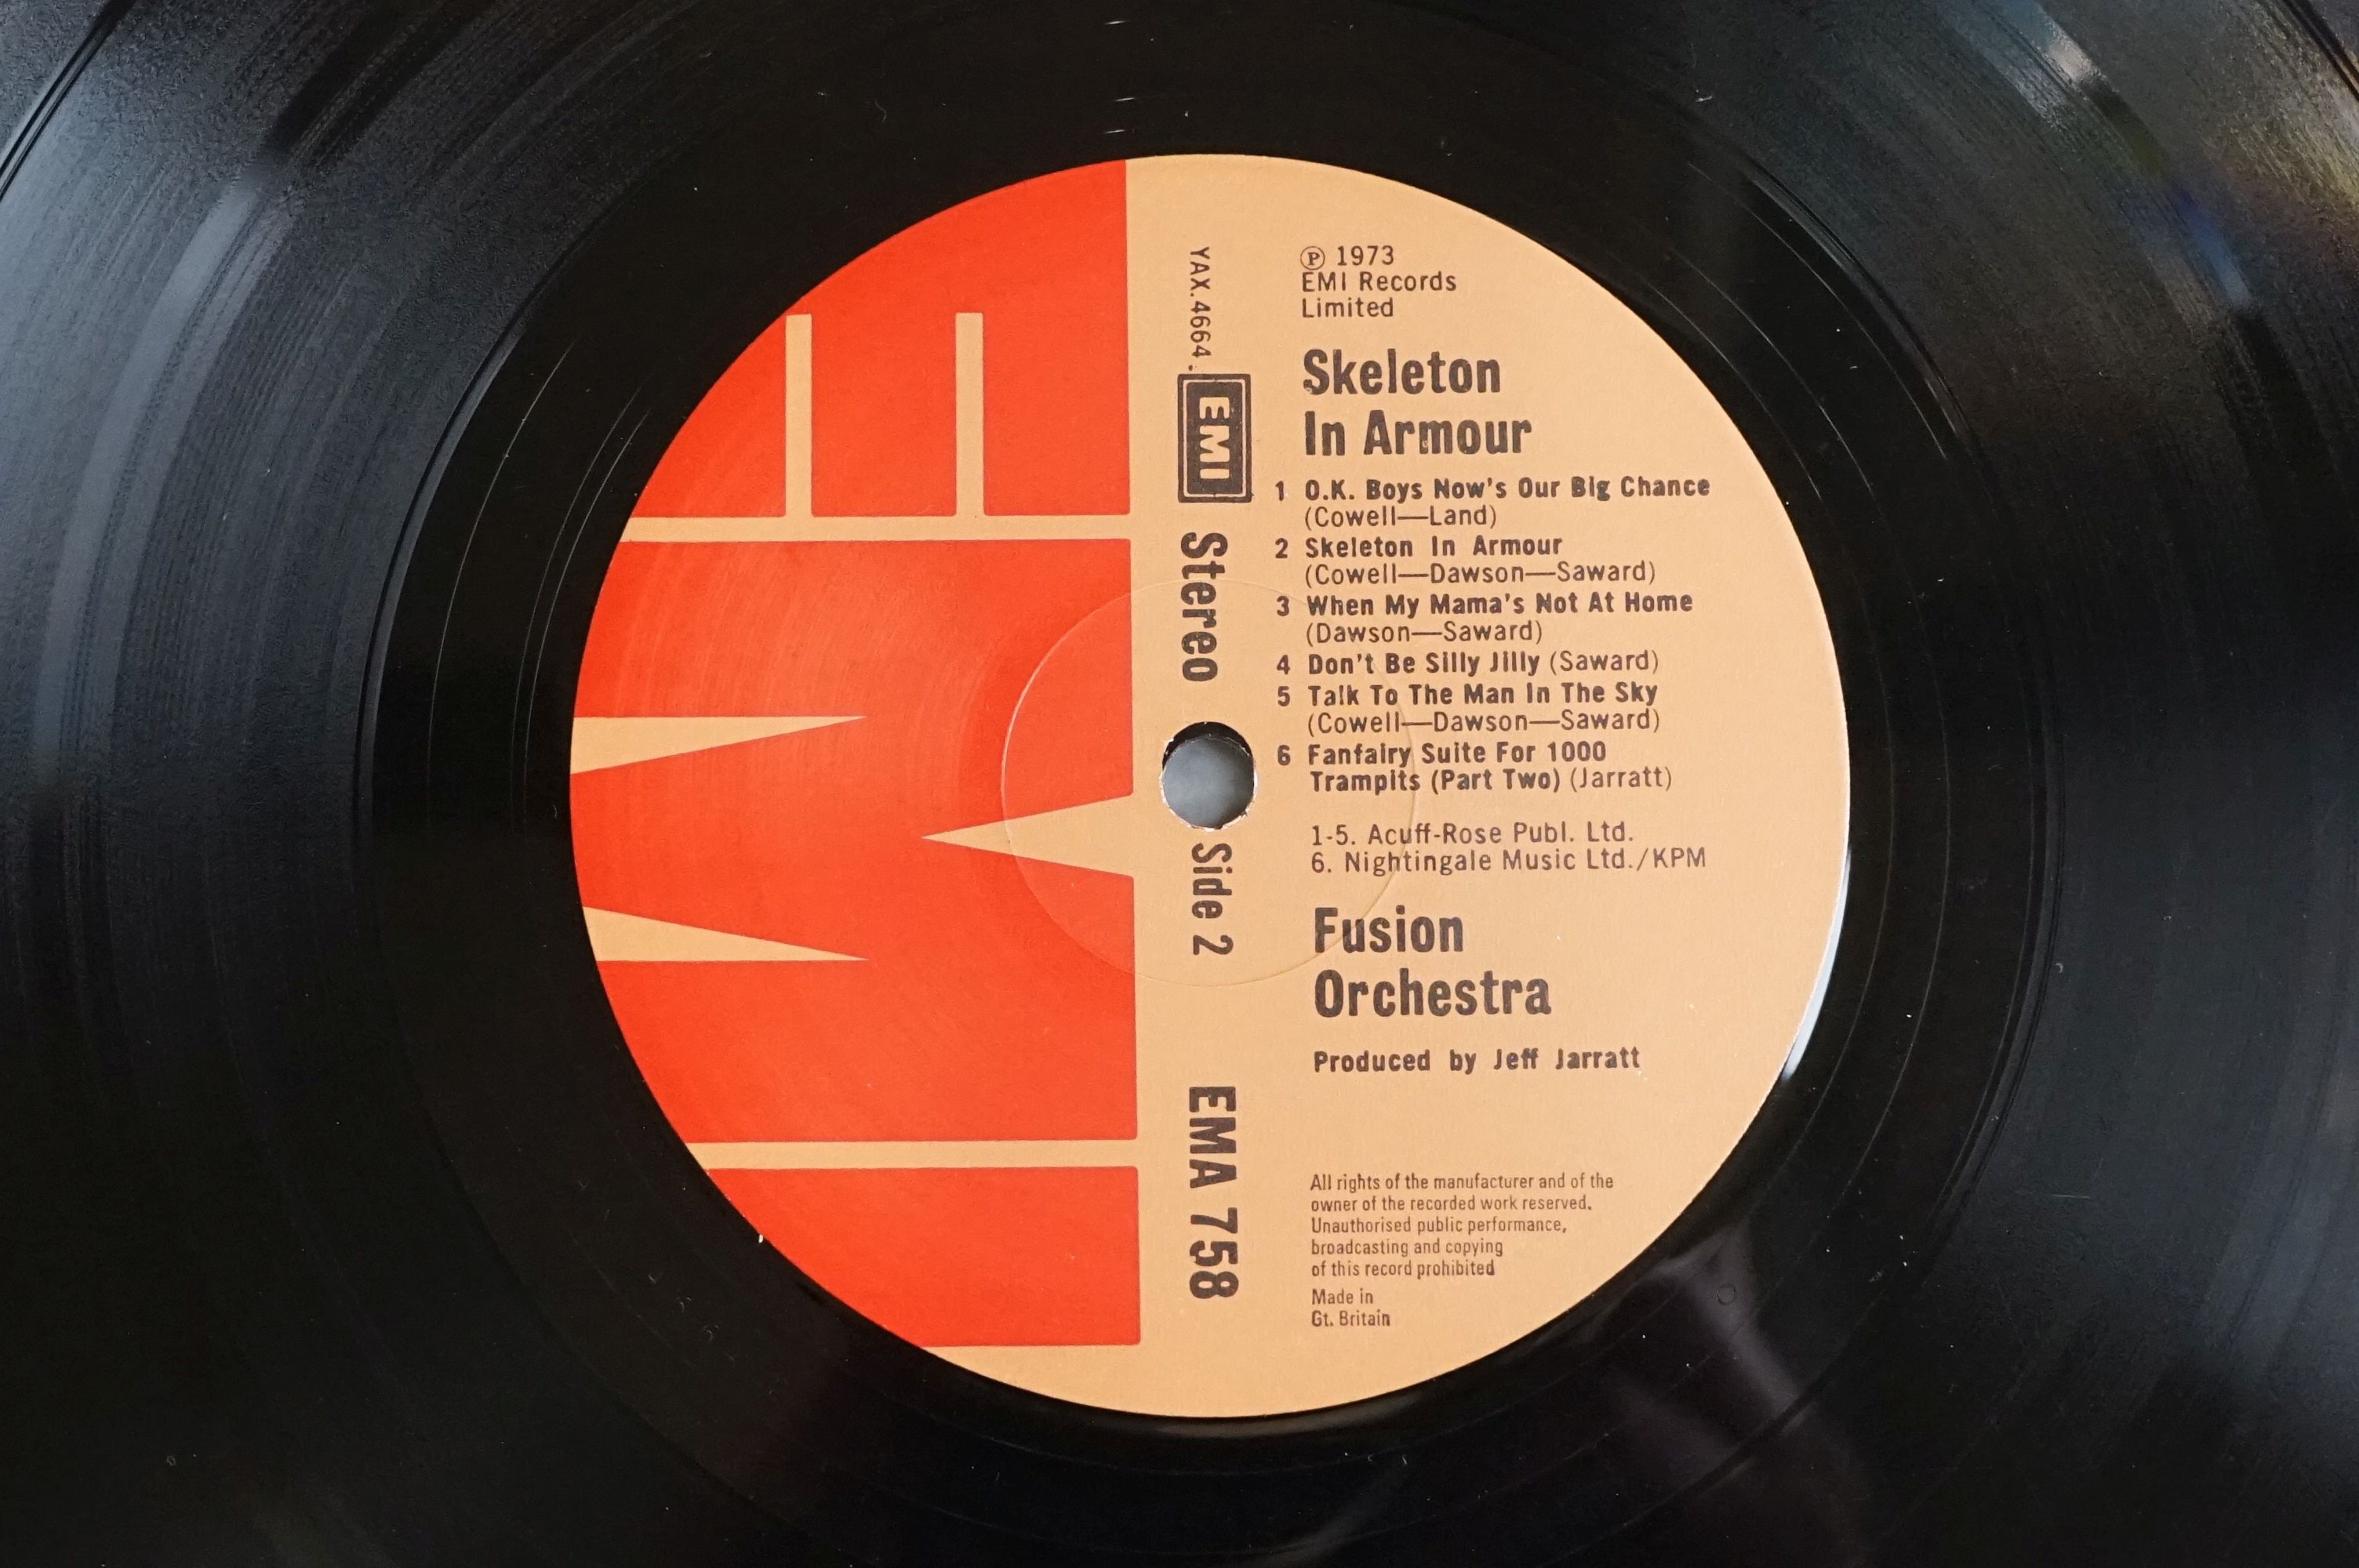 Vinyl - Fusion Orchestra Skeleton In Armour LP EMA758, sleeve vg+ with buffering to corners, - Image 6 of 6